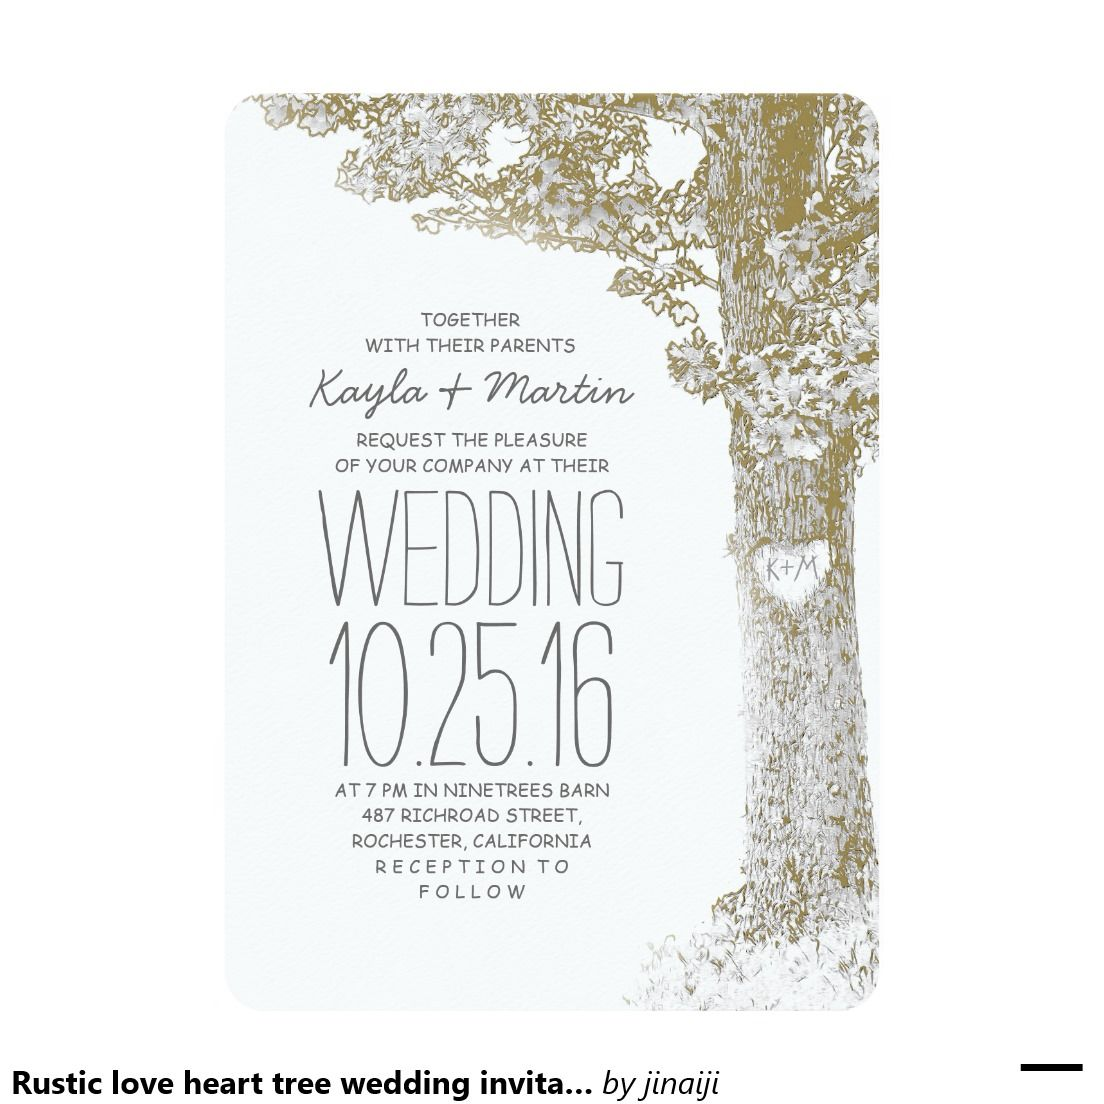 Rustic love heart tree wedding invitations | Heart tree and Wedding